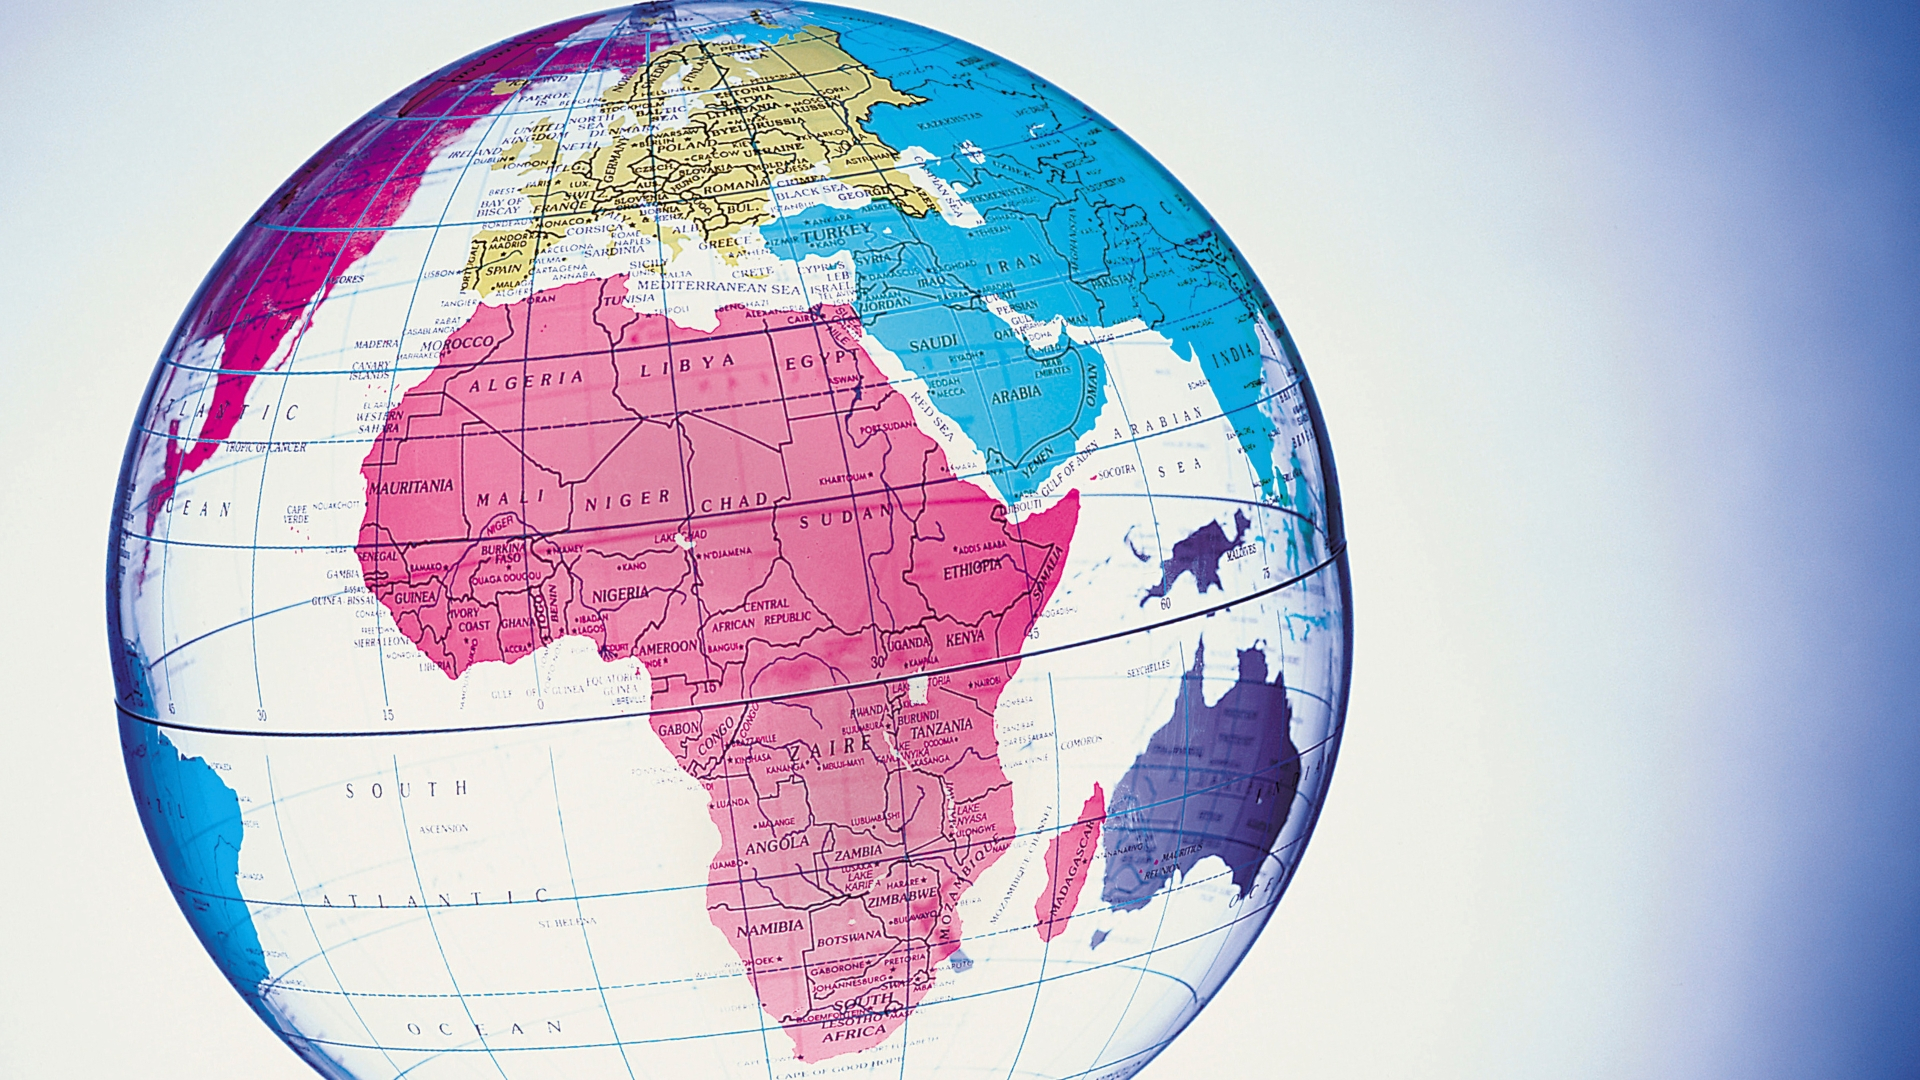 Image of African continent on a plastic globe: Tributes from Africa to Ravi Zacharias #thankyouravi